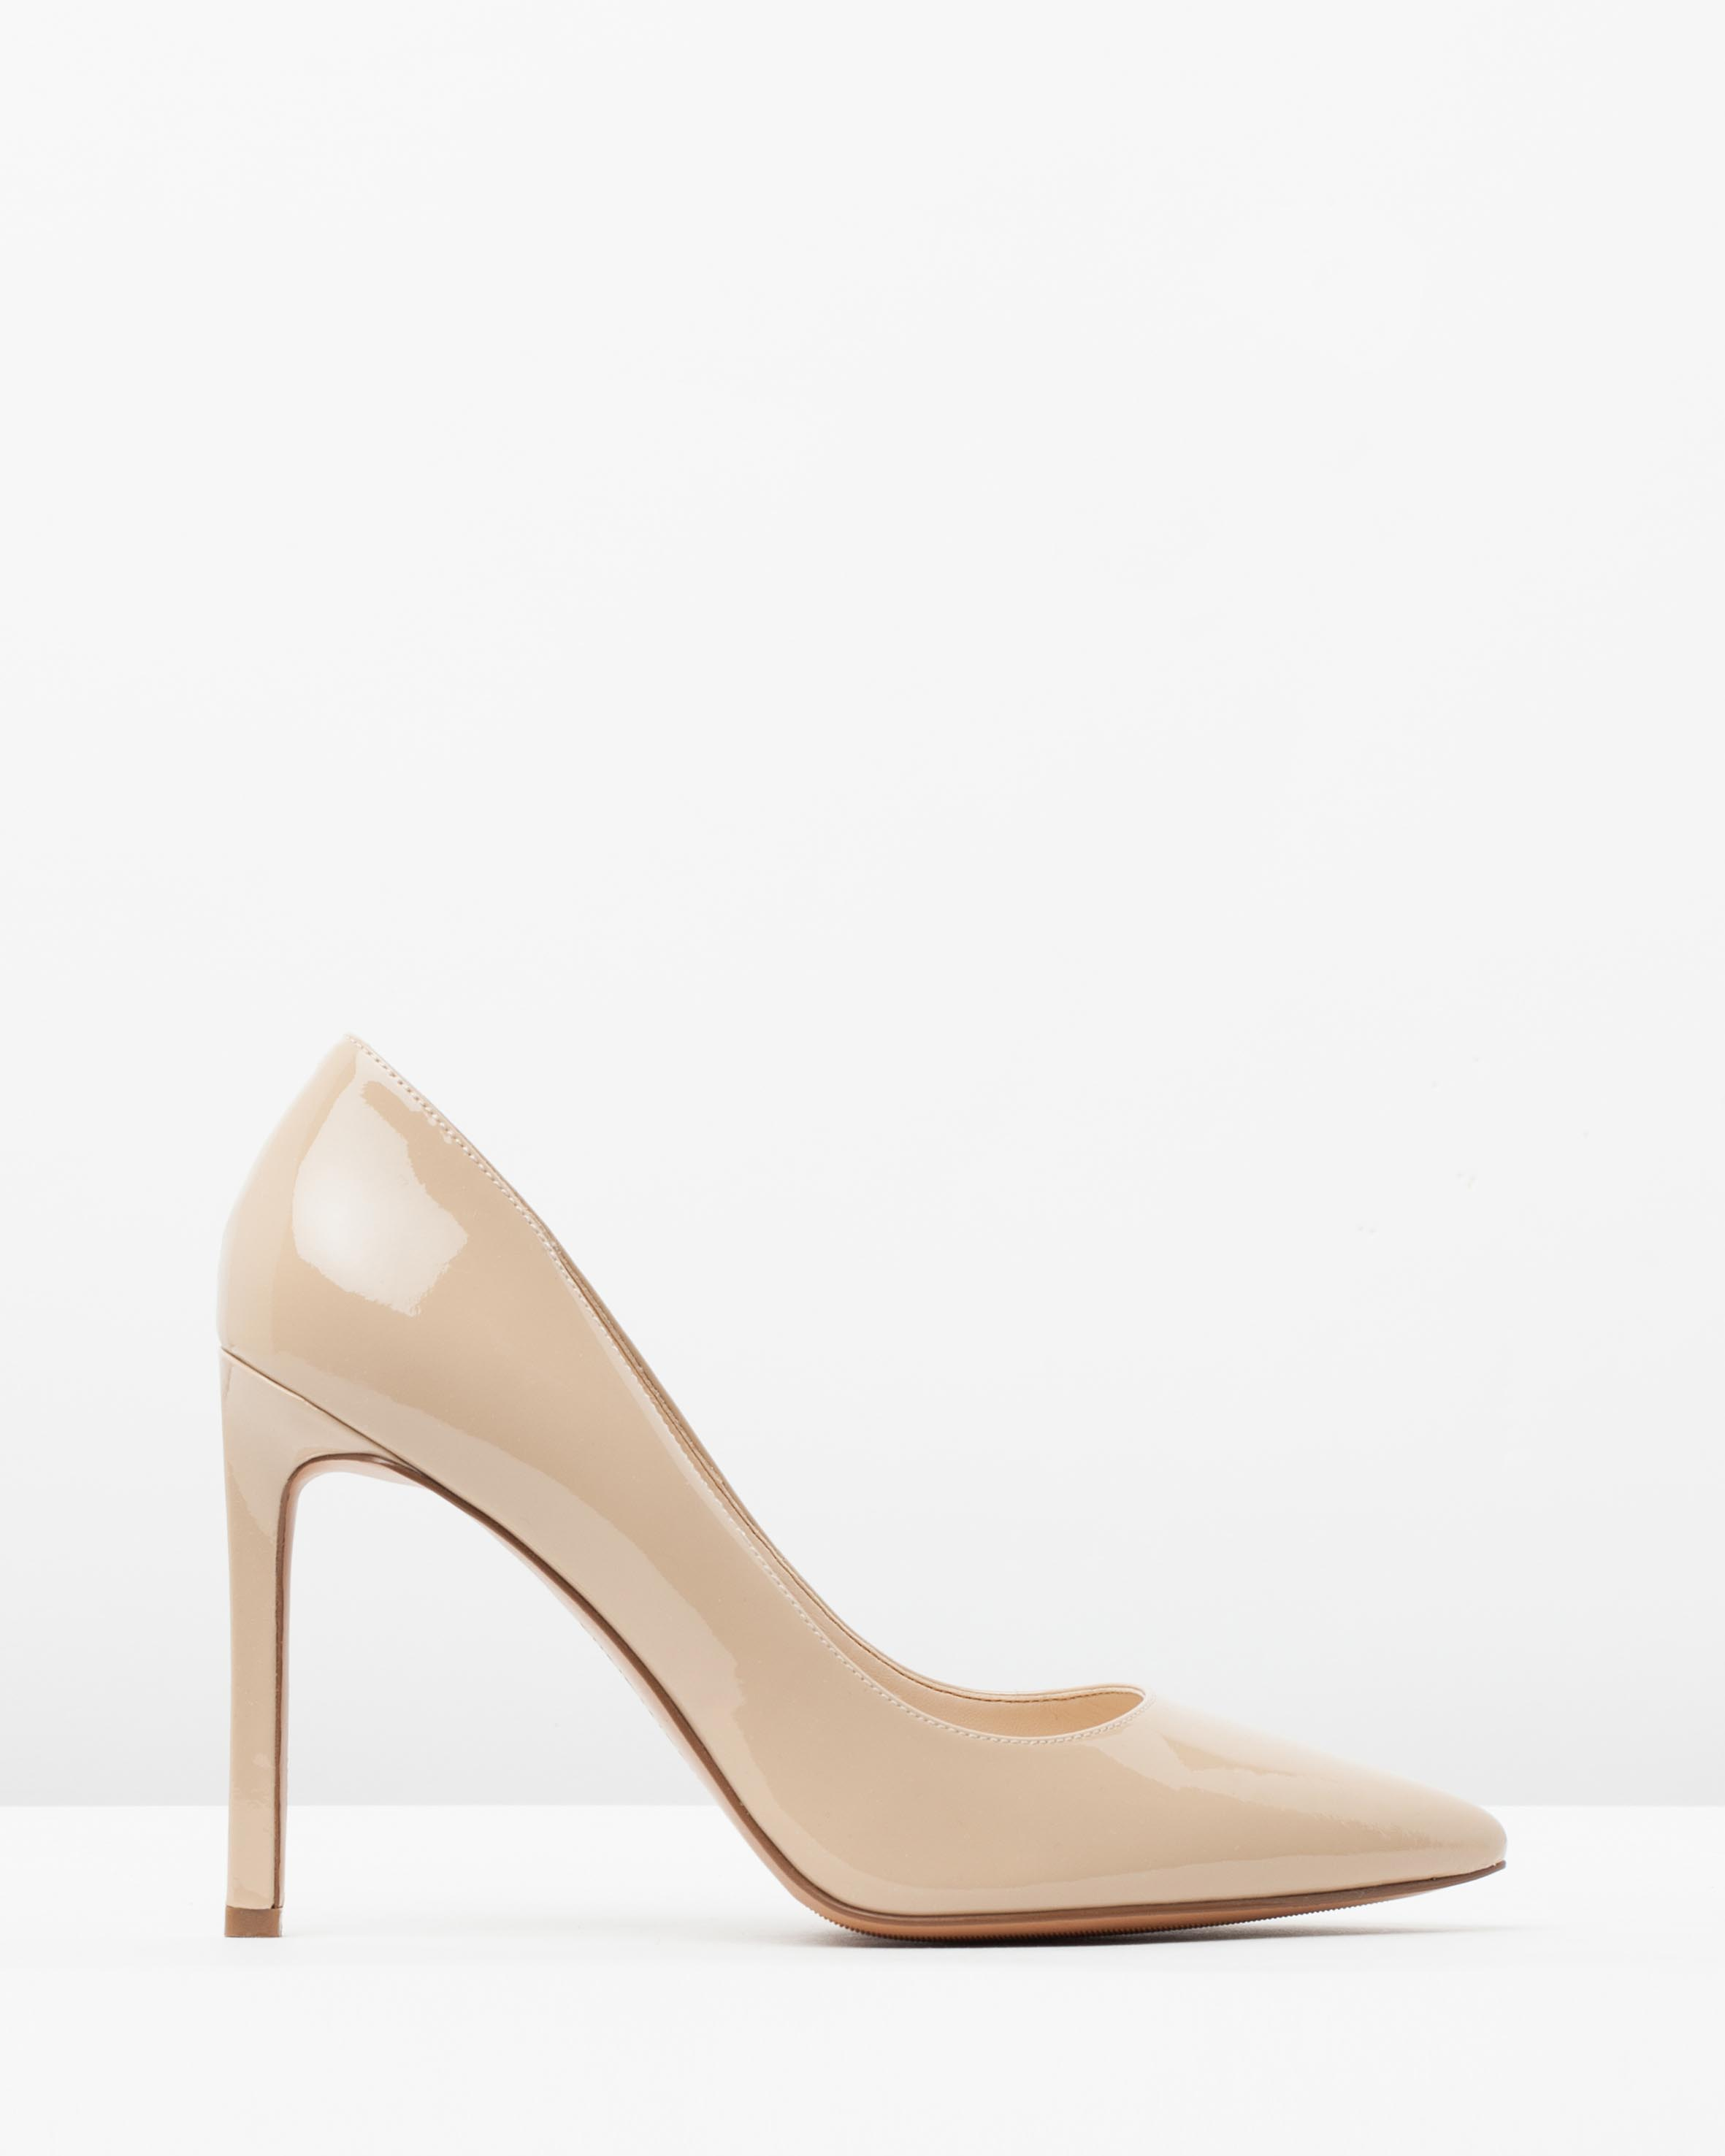 Nine West | Nine West Shoes & Accessories | Nine West Online